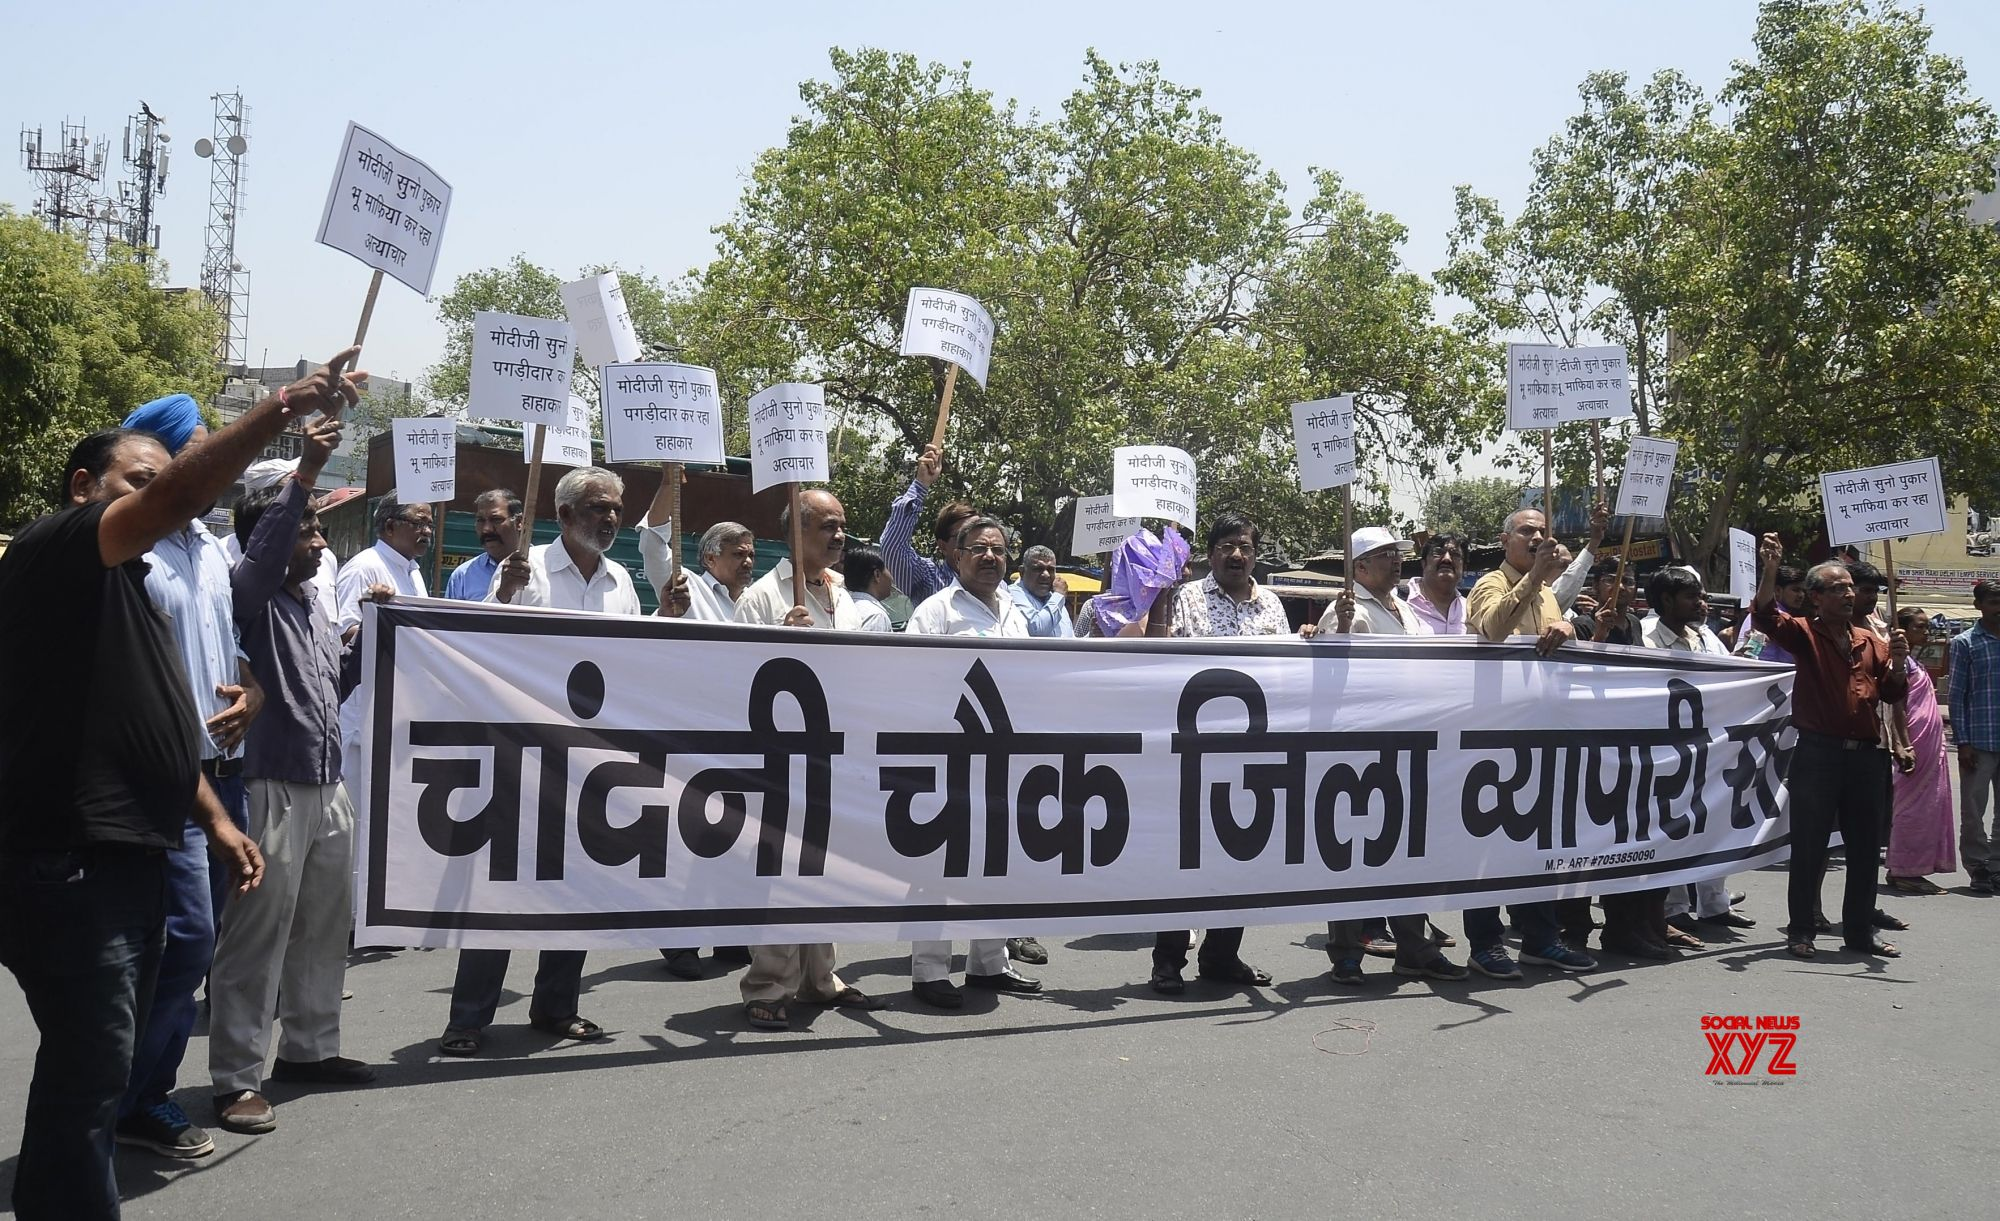 Old Delhi traders protest Rent Control Act fearing eviction